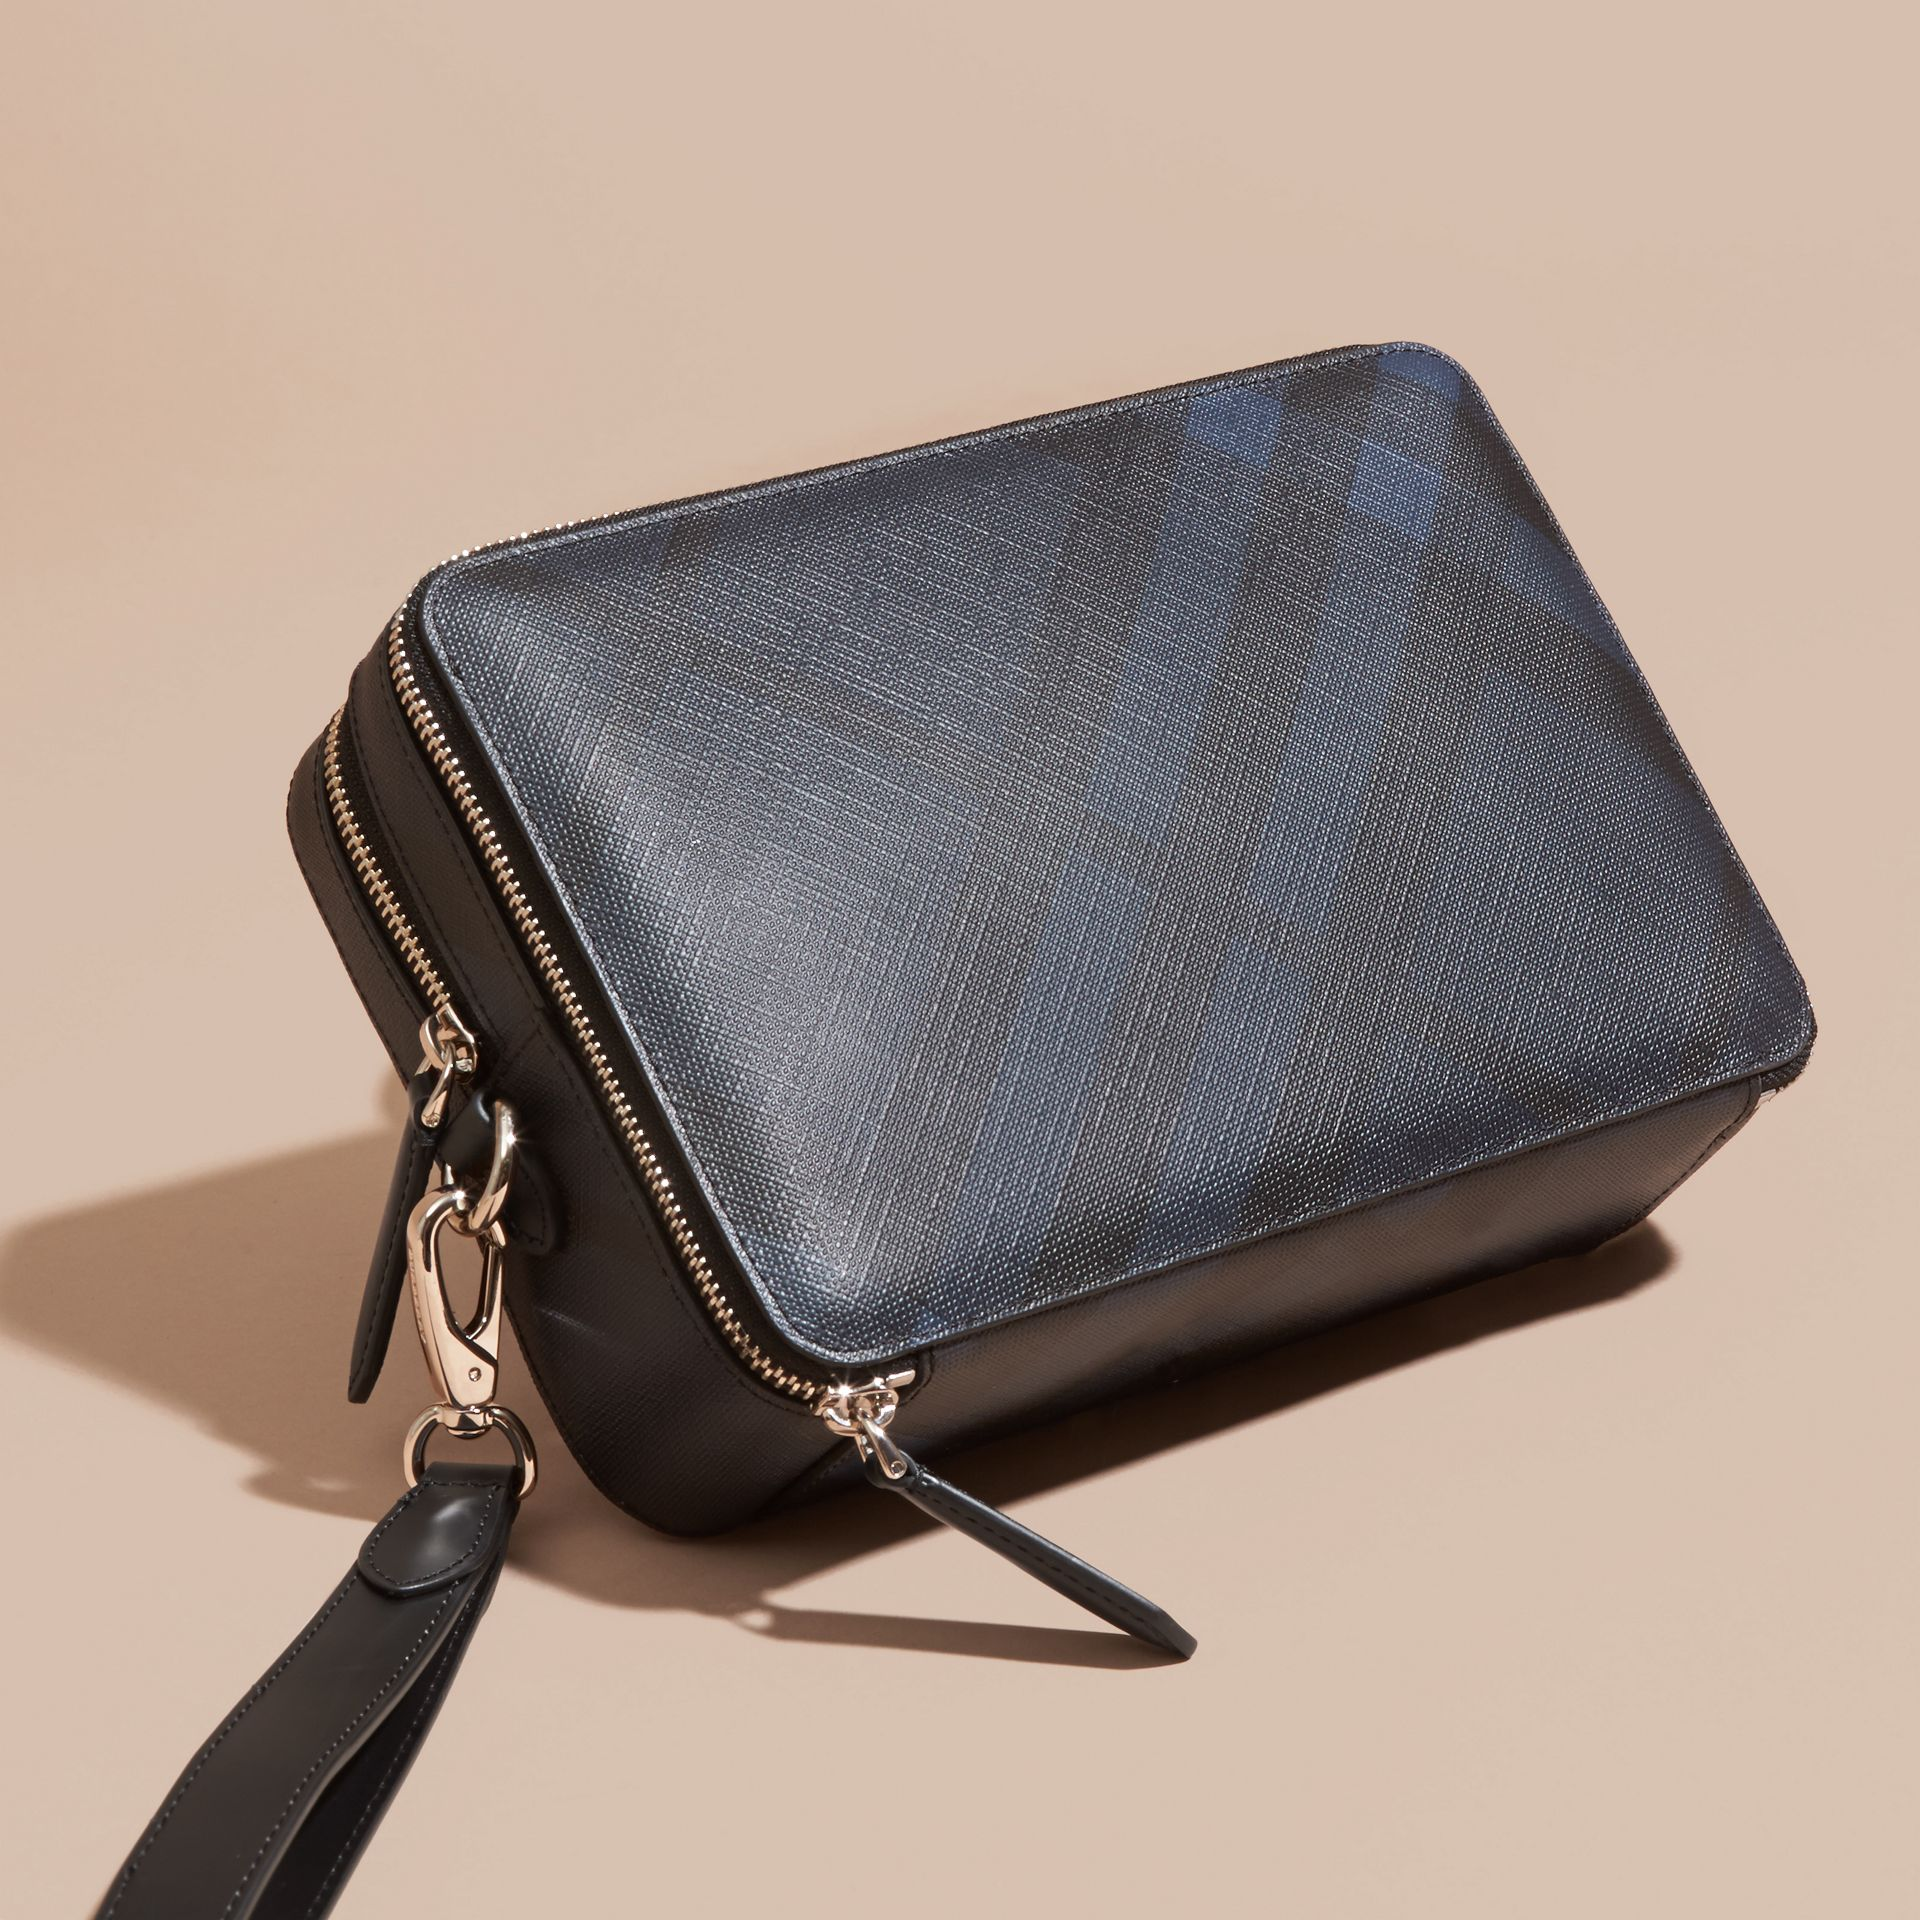 Leather-trimmed London Check Pouch in Navy/black - Men | Burberry - gallery image 5